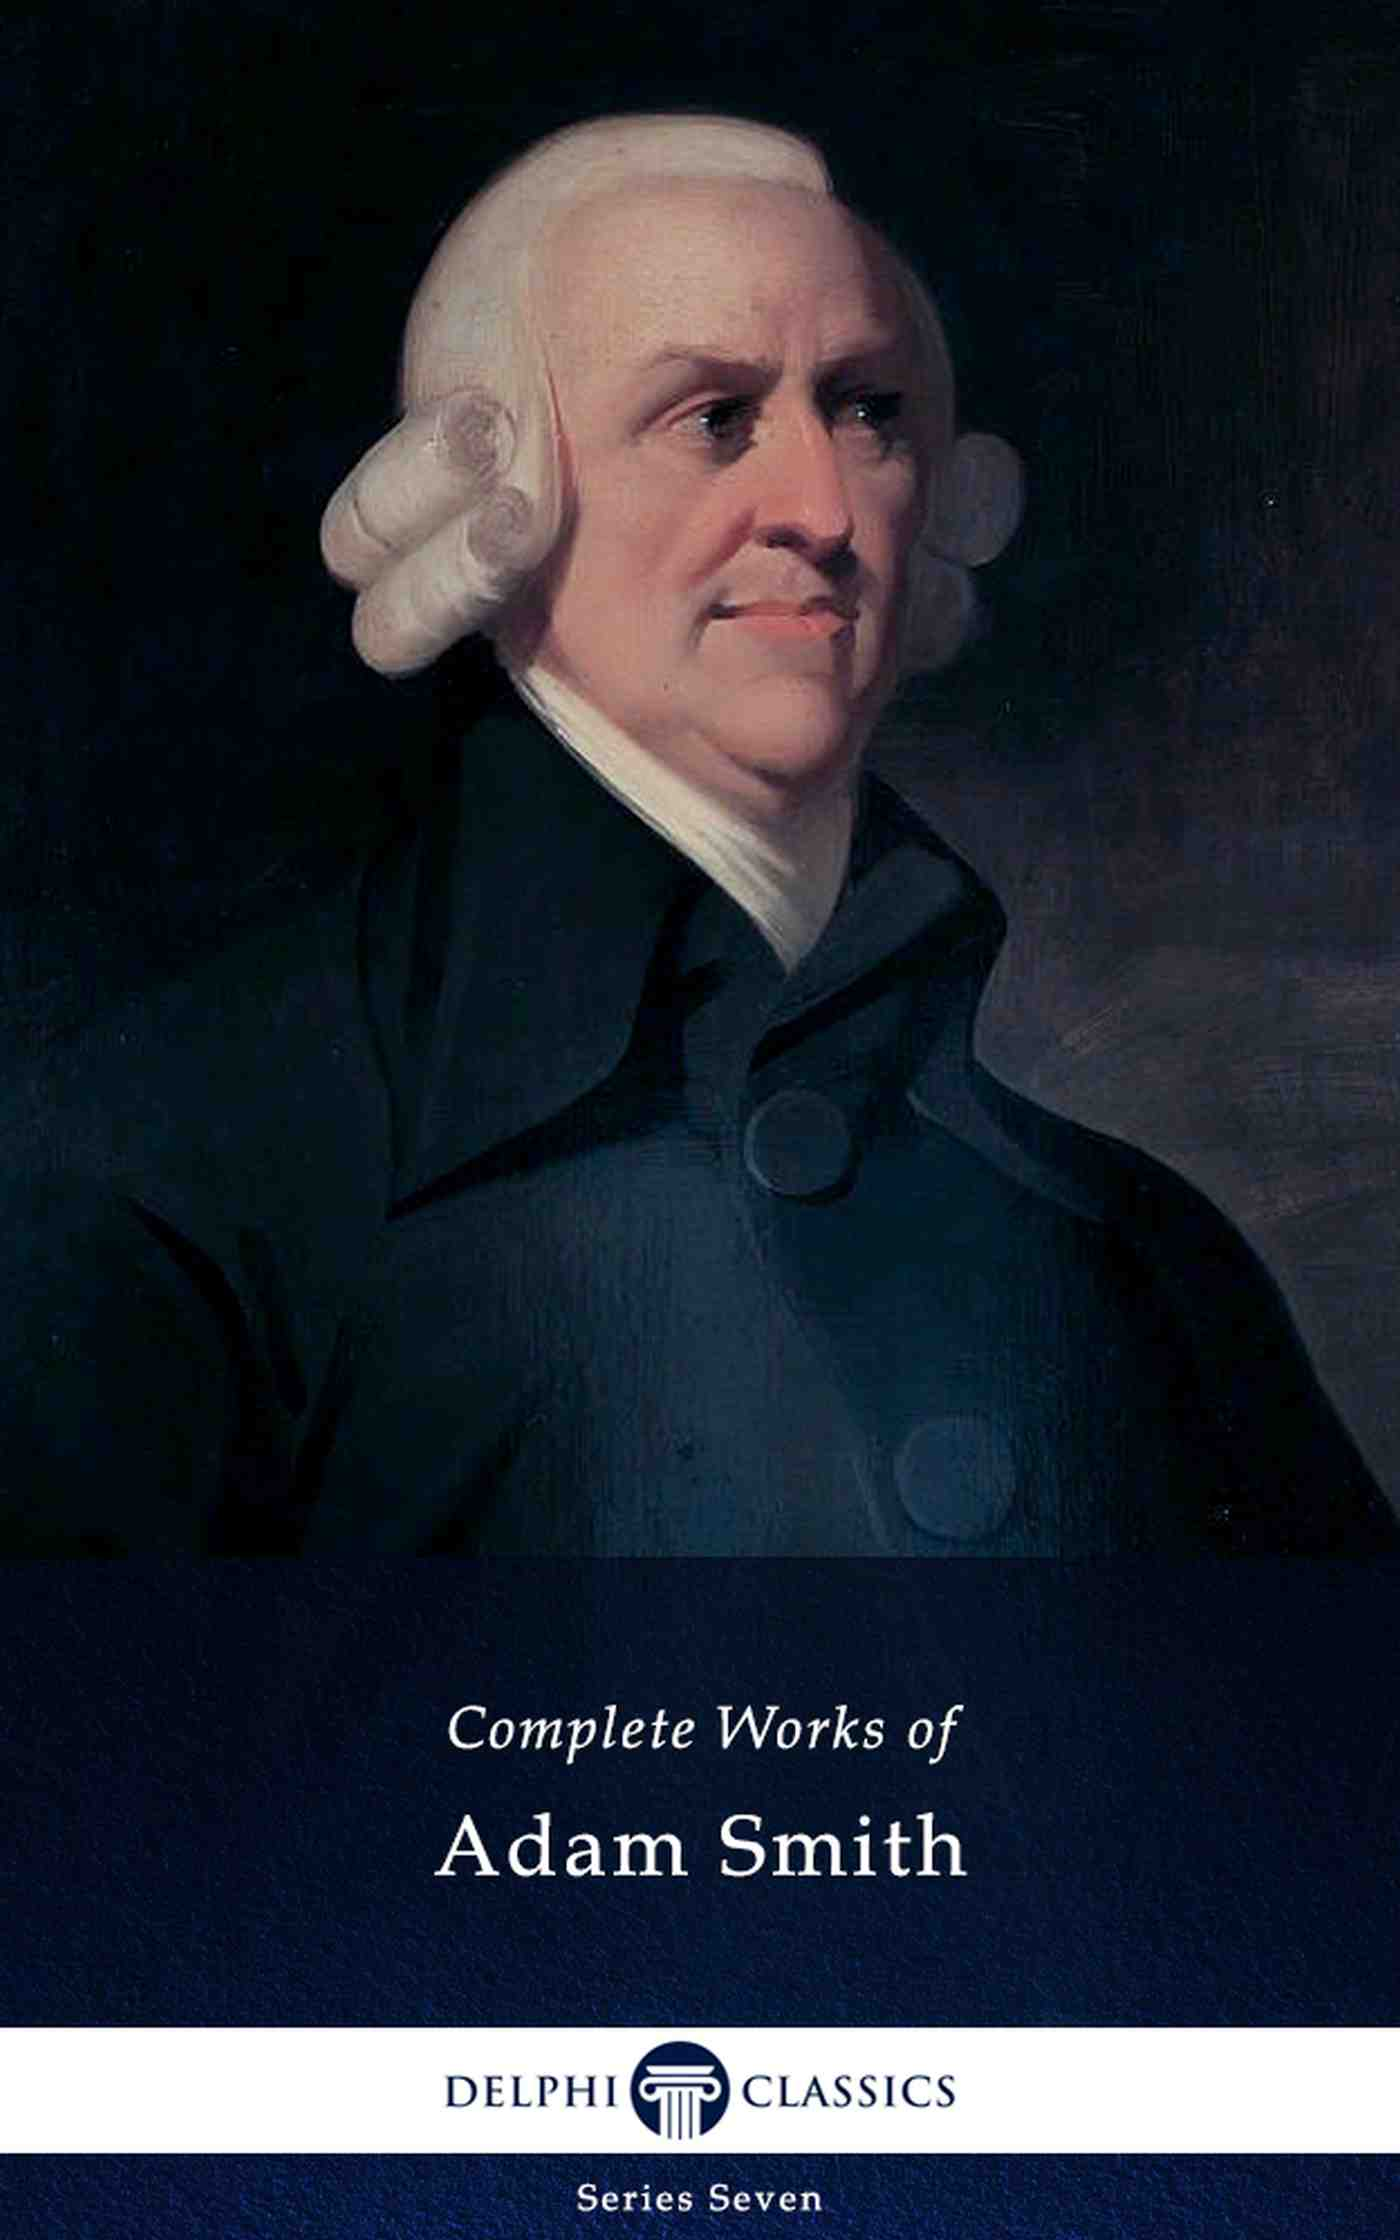 adam smith delphi classics complete works of adam smith apple